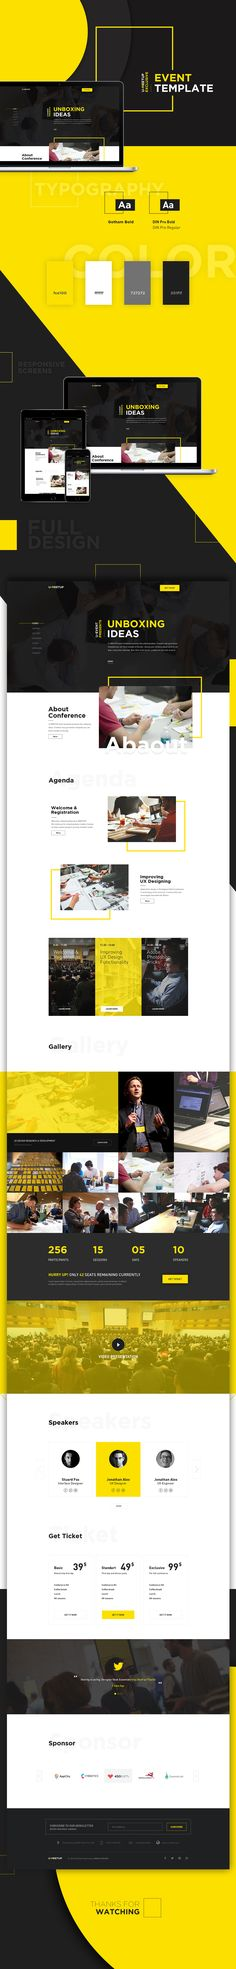 U-MEETUP is an One Page Event and Conference Template for any kind of modern and outstanding Creative, Corporate Event and Conference. It's made with bootstrap grid and well organised layers makes it easy to edit for everyone. These designs ux combine cre…